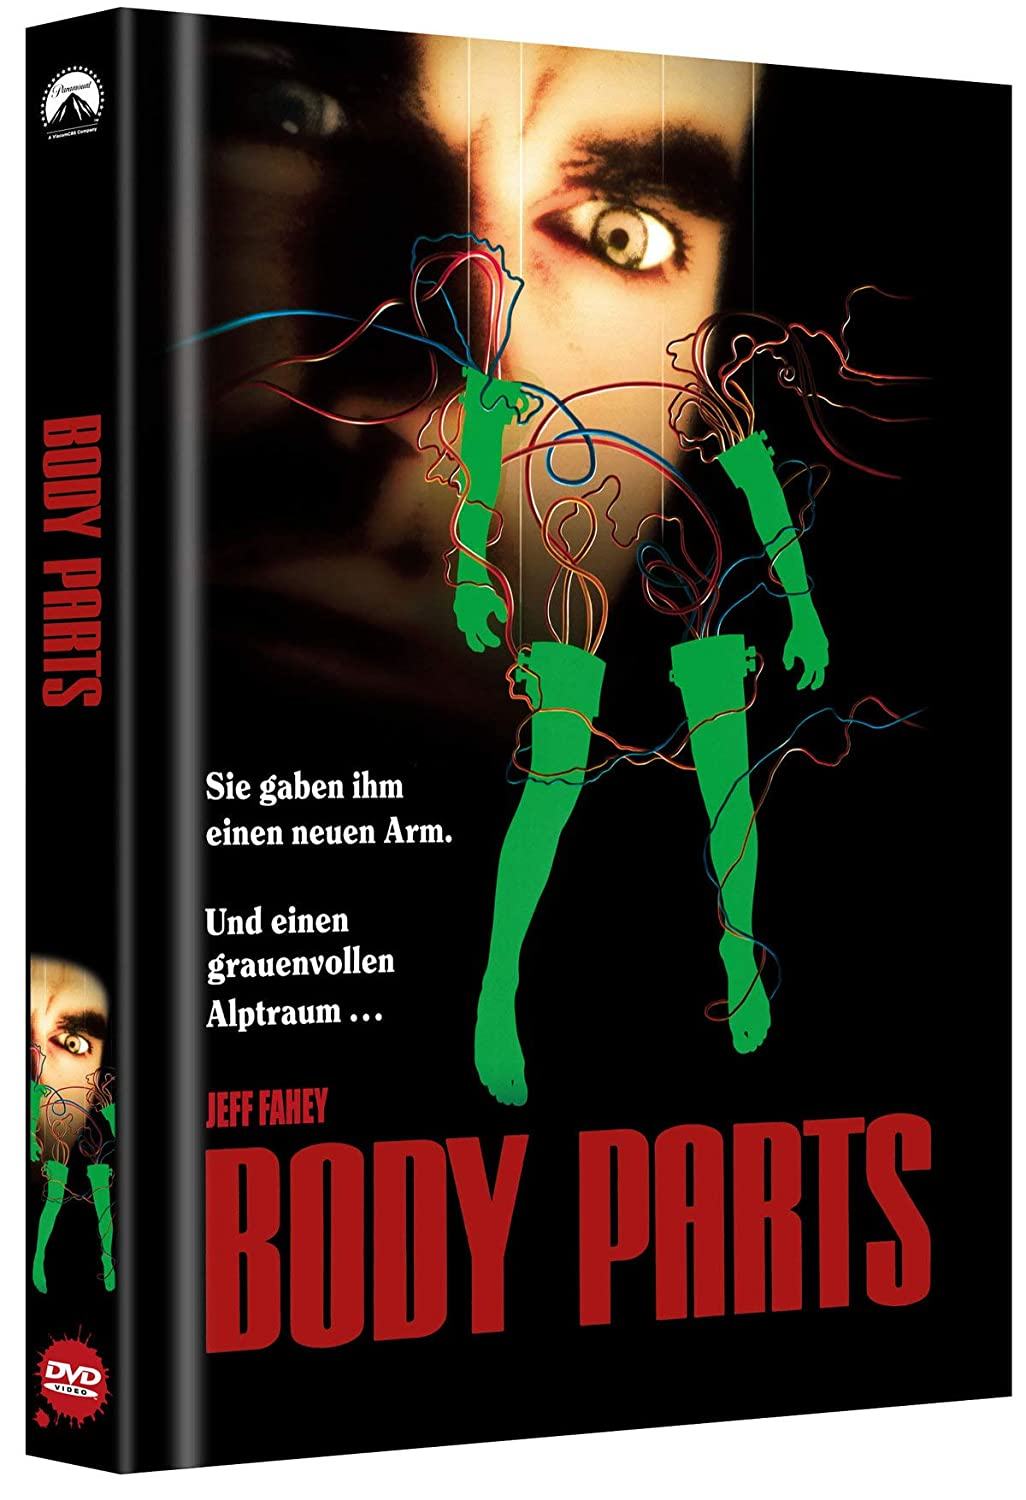 Body Parts - Limited Collectors Edition Mediabook (Cover B) - limitiert auf 400 Stk.